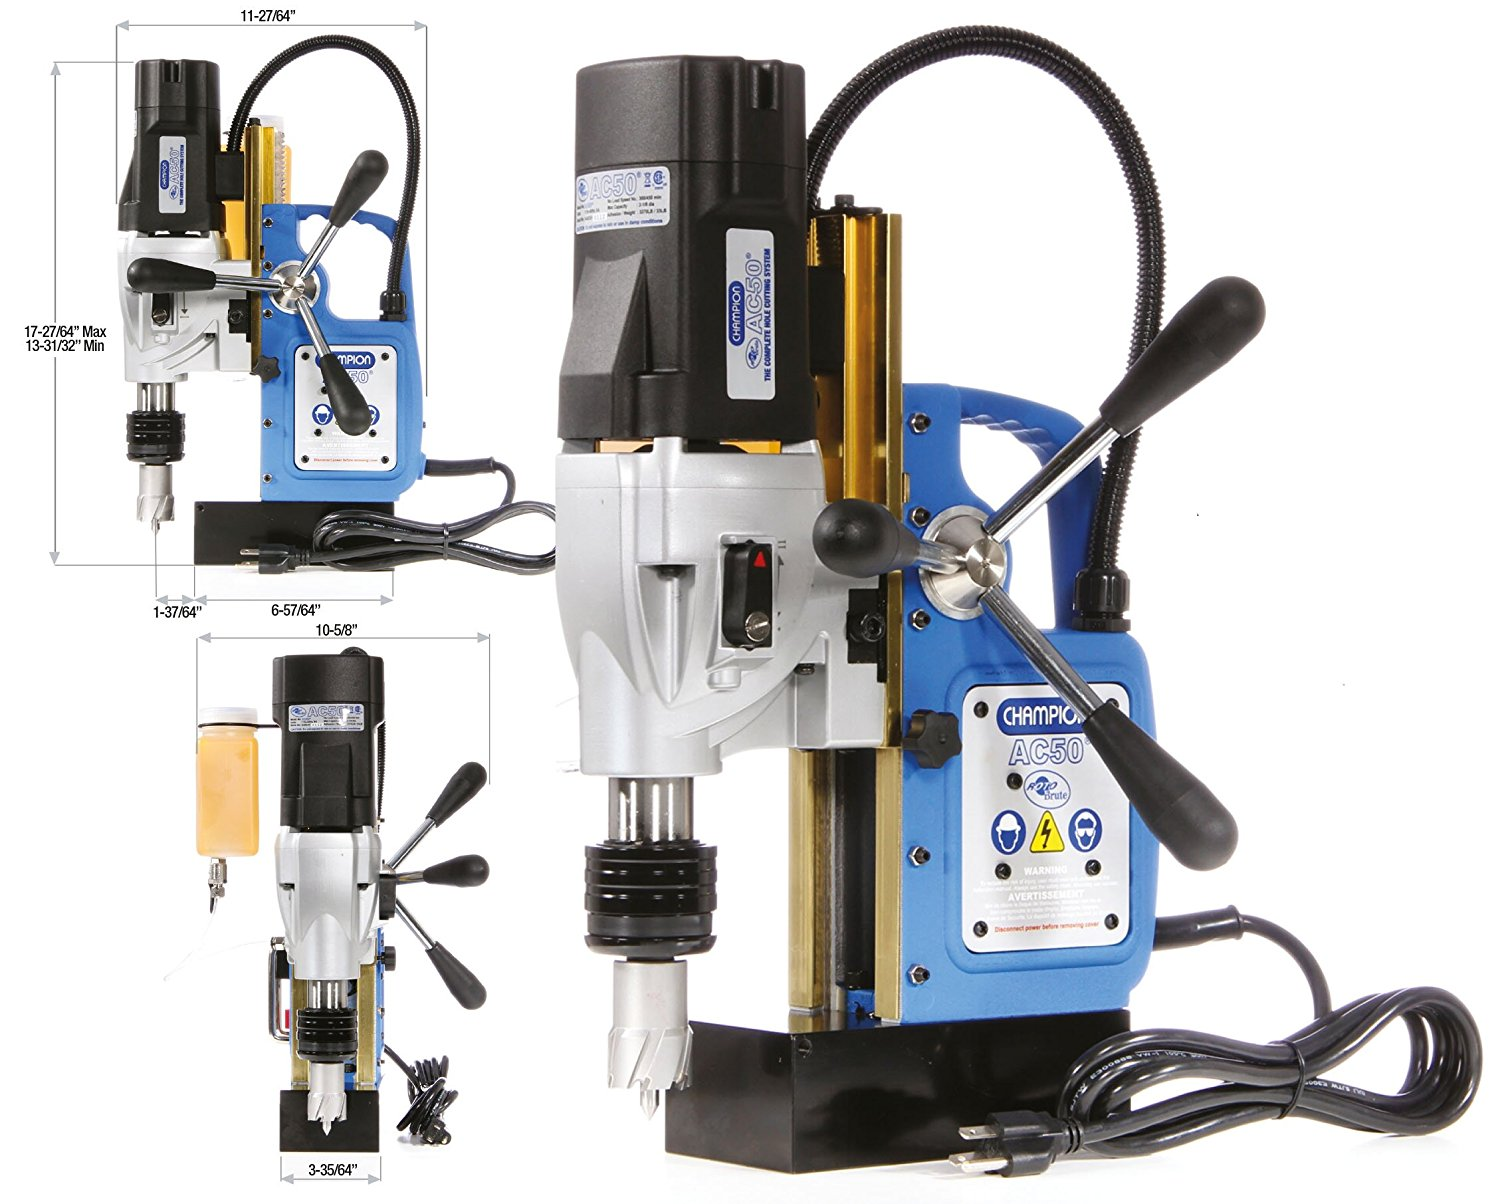 Champion Cutting drill press